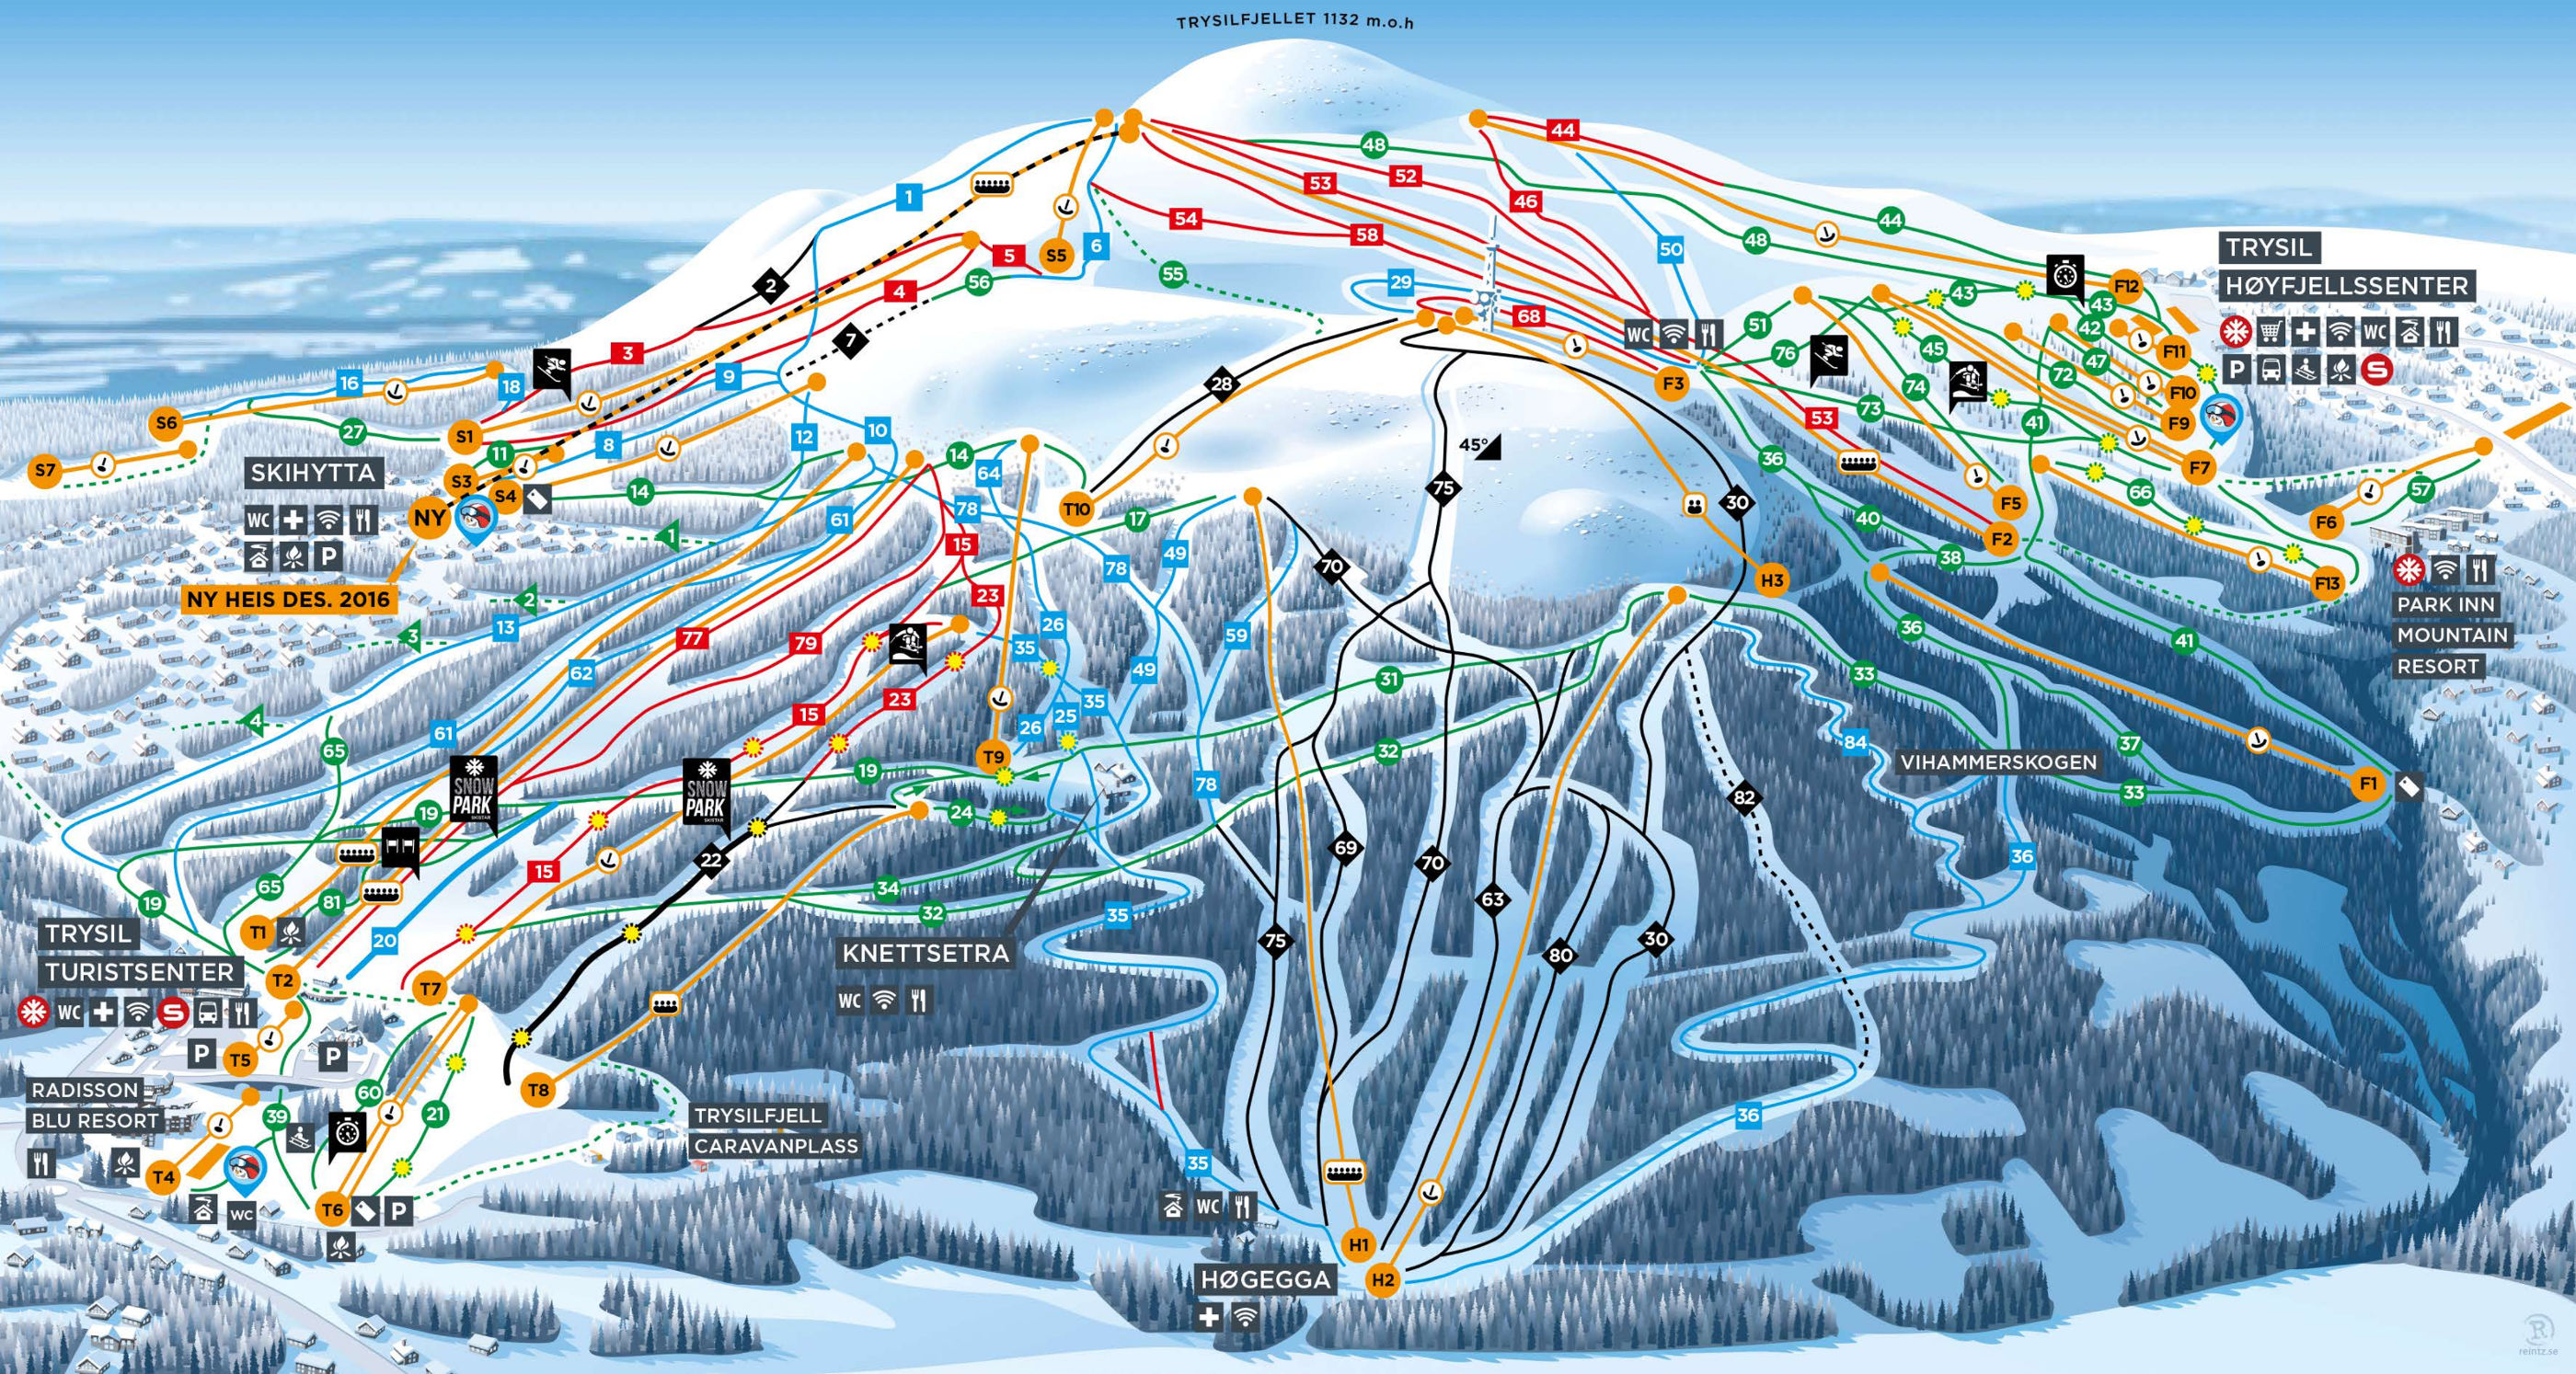 ski resorts in oregon map with Trysil on Trail Map further Luxury How Many Ski Resorts In Washington State besides New H shire 4000 Footers Poster Map moreover Lake Tahoe Ski Resorts Map Poster together with Adirondack High Peaks Map 18x24 Poster.